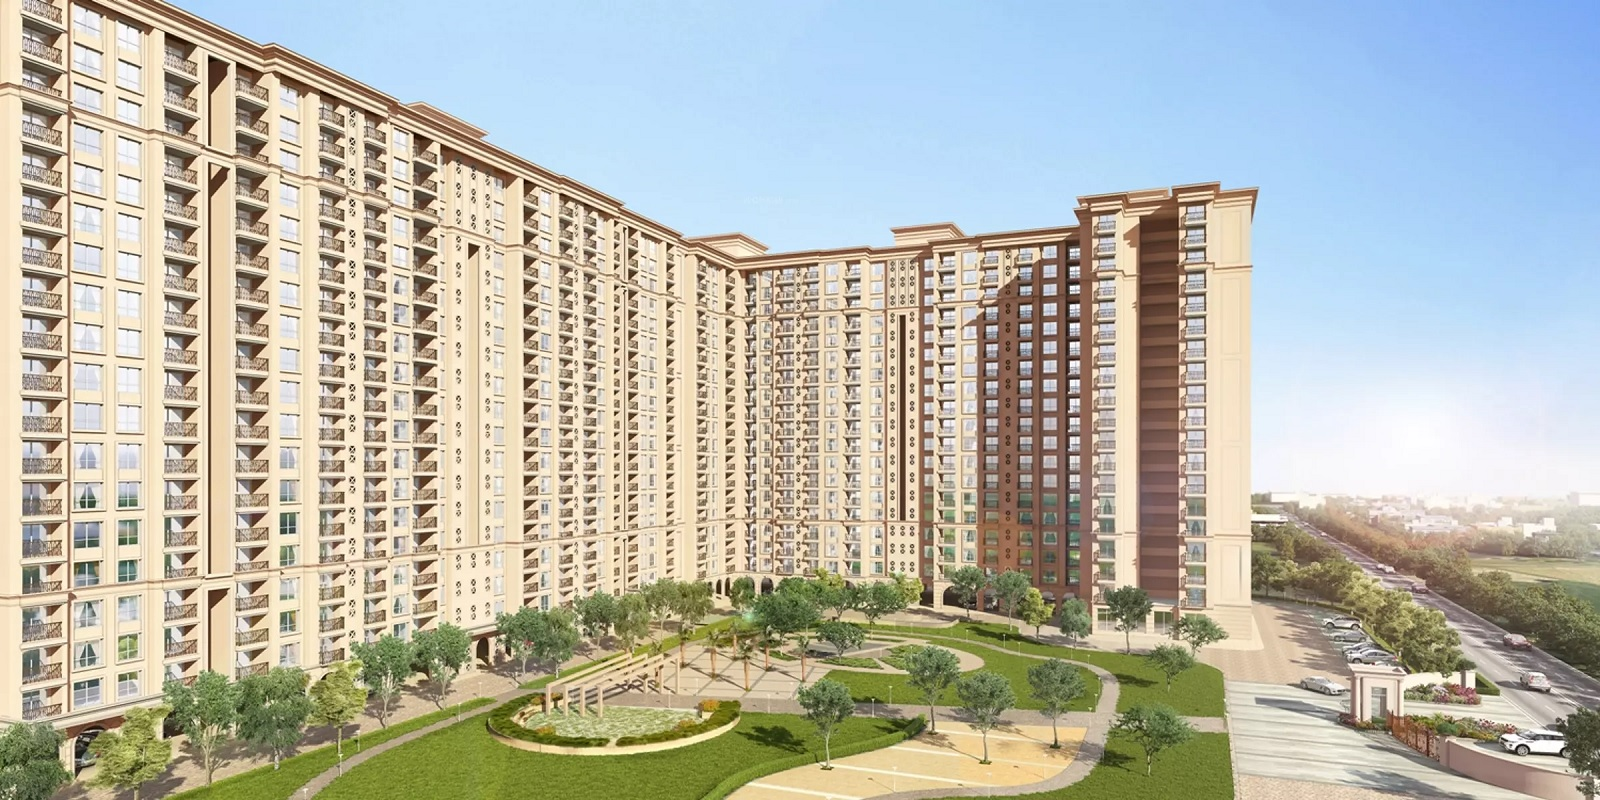 hiranandani glen gate project large image1